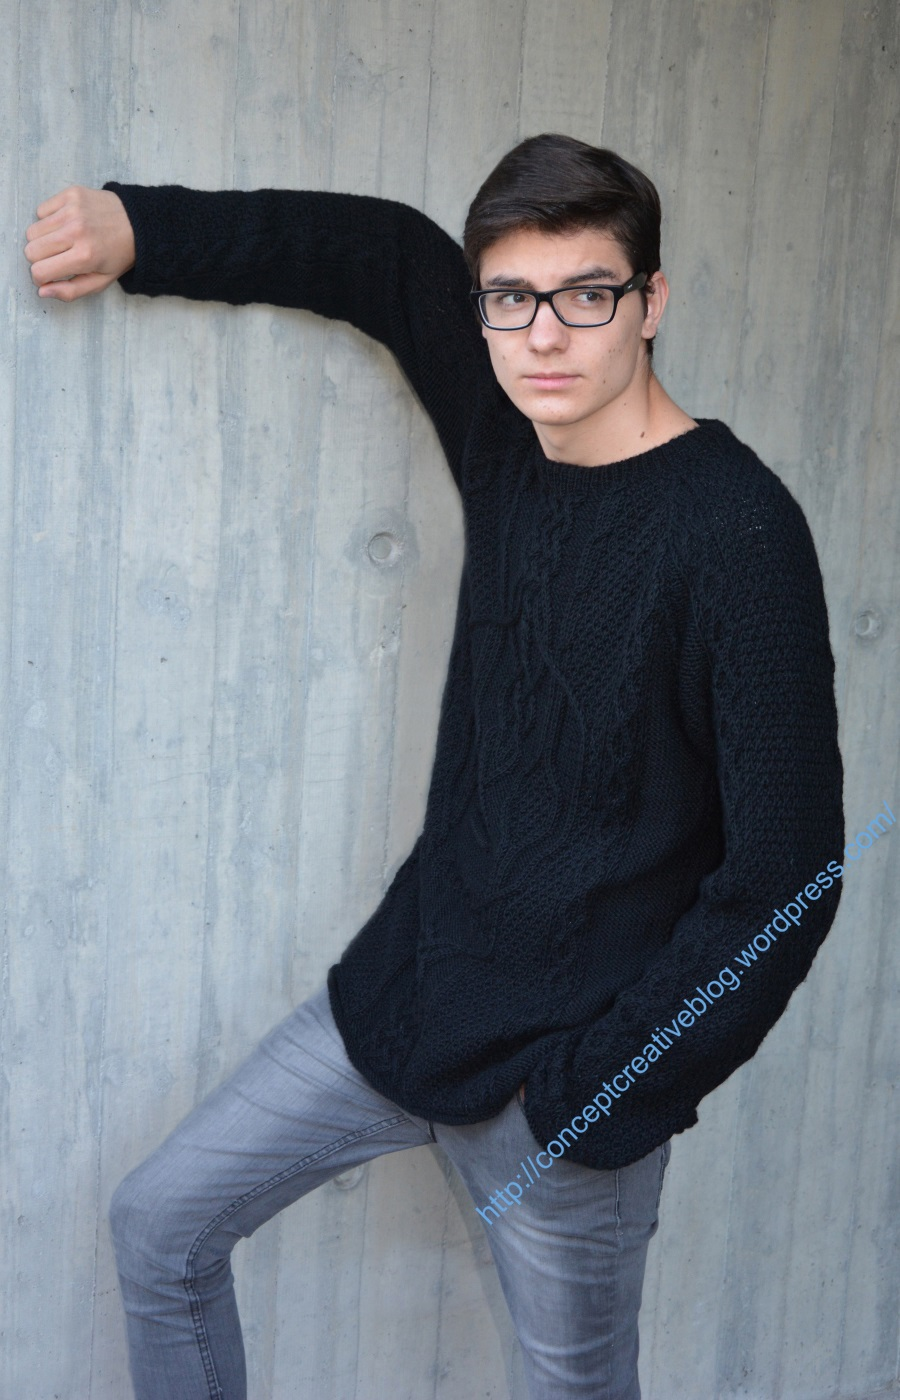 Knit cable pullover with skull pattern / freediagram